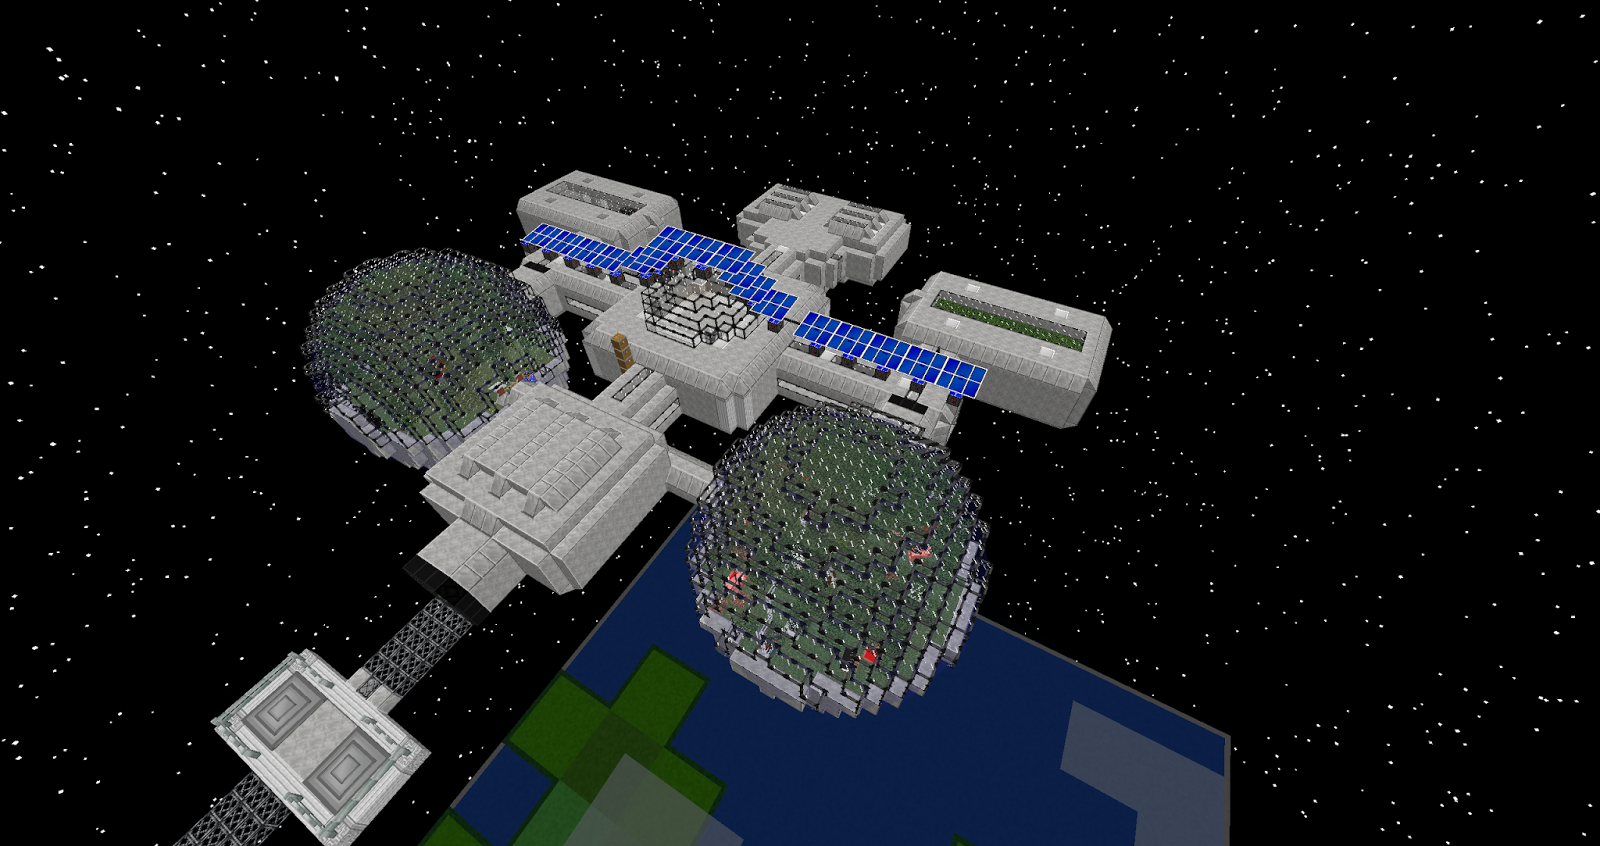 MonsterCWP's Blog: Modded Minecraft- Space Station